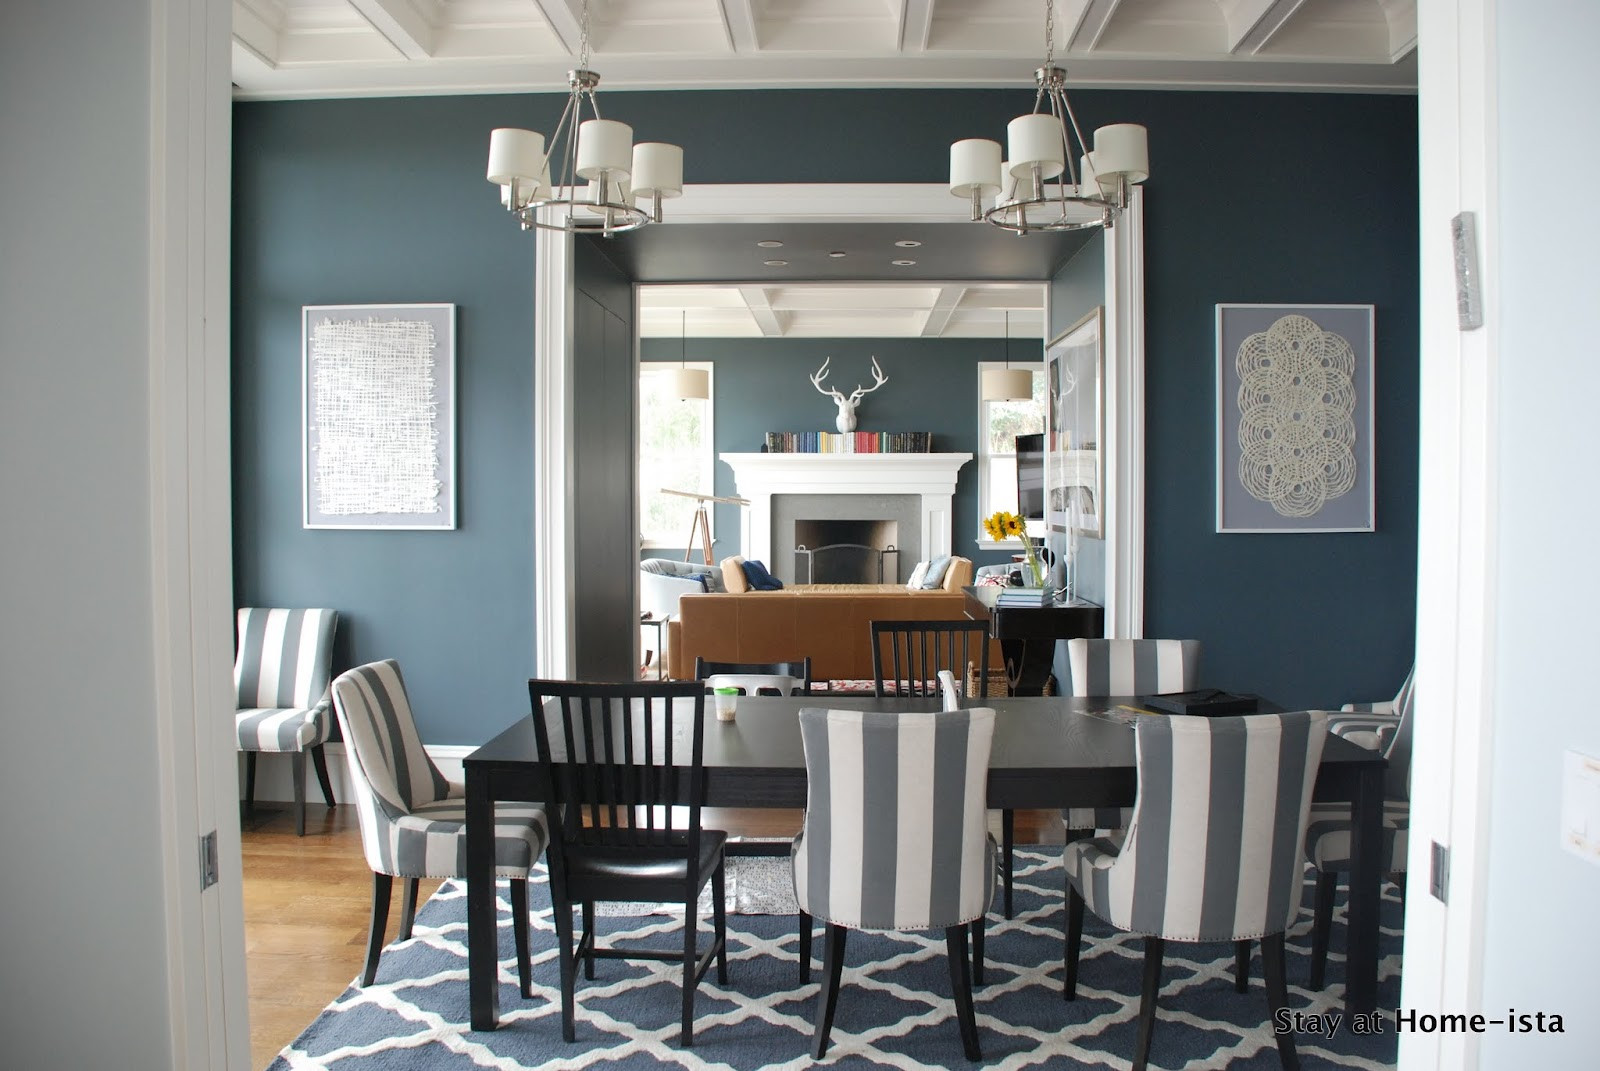 Best ideas about Rugs For Dining Room . Save or Pin 30 Rugs That Showcase Their Power Under the Dining Table Now.